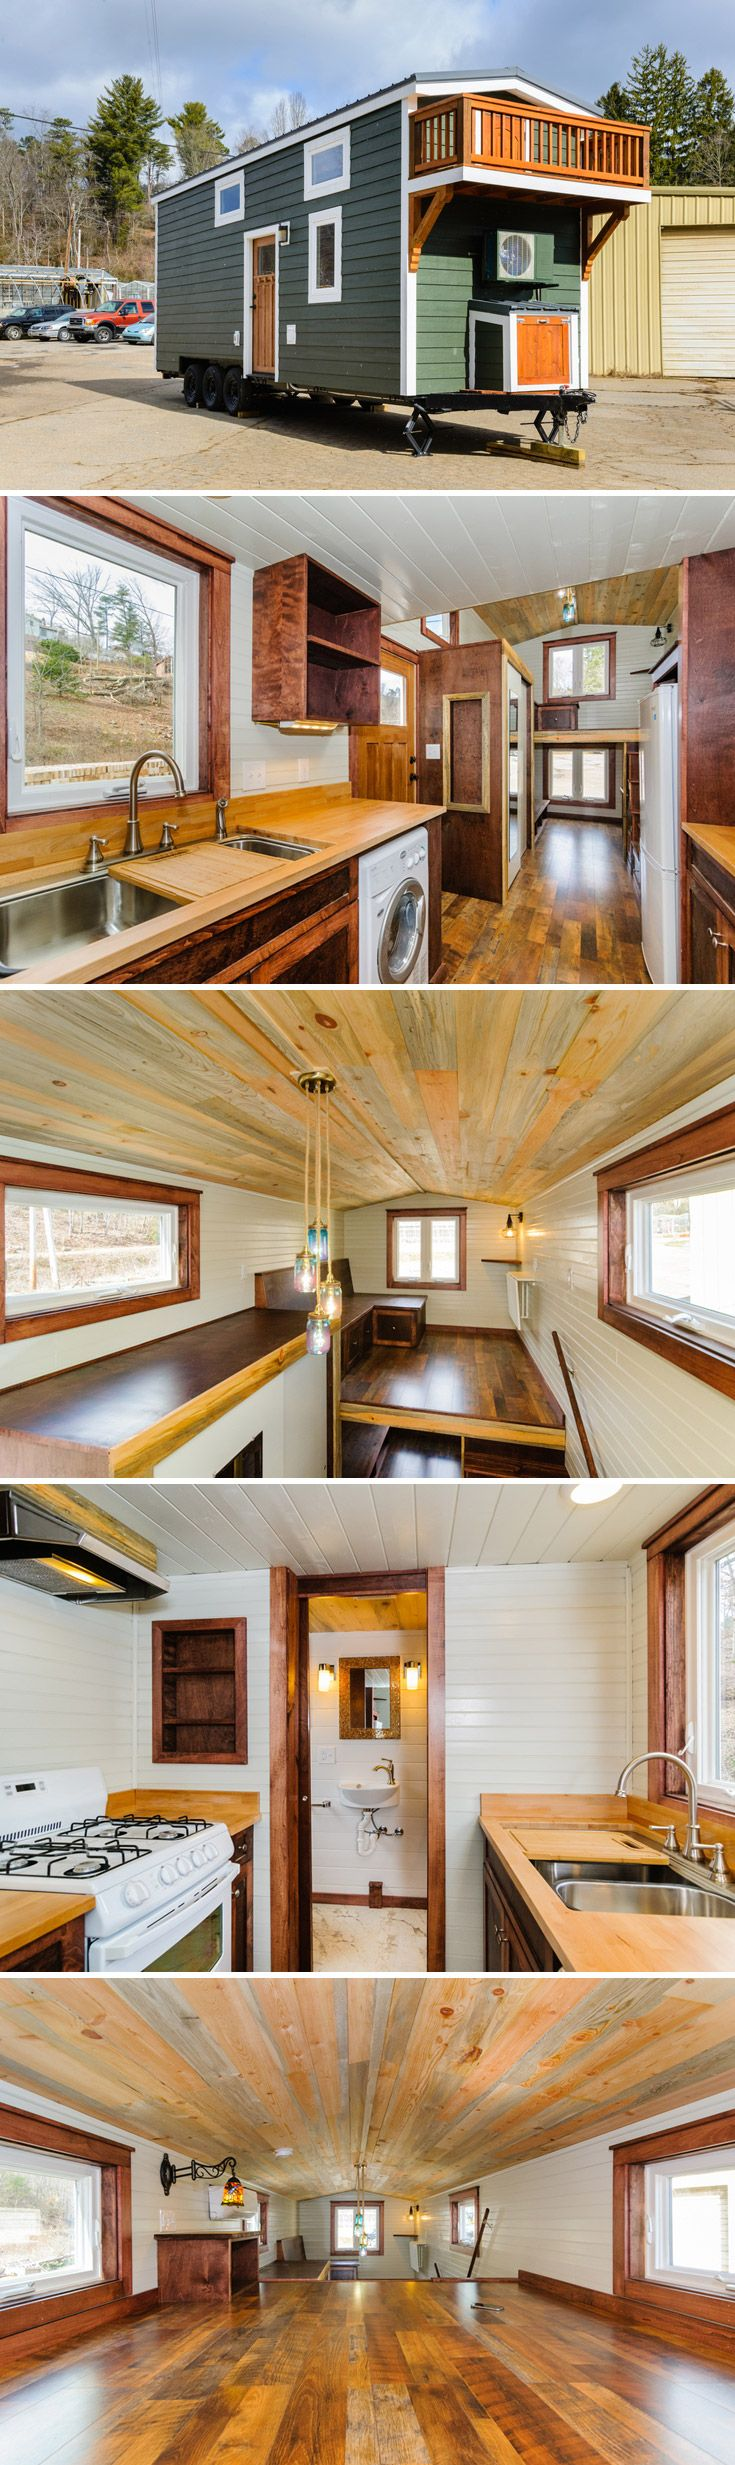 This 208 sq.ft. tiny house on wheels includes a split level loft, balcony, and -- not something we can say often in a tiny house description -- a walk-in closet!  The kitchen has a 9.2 cubic foot refrigerator and 4 burner range with oven.